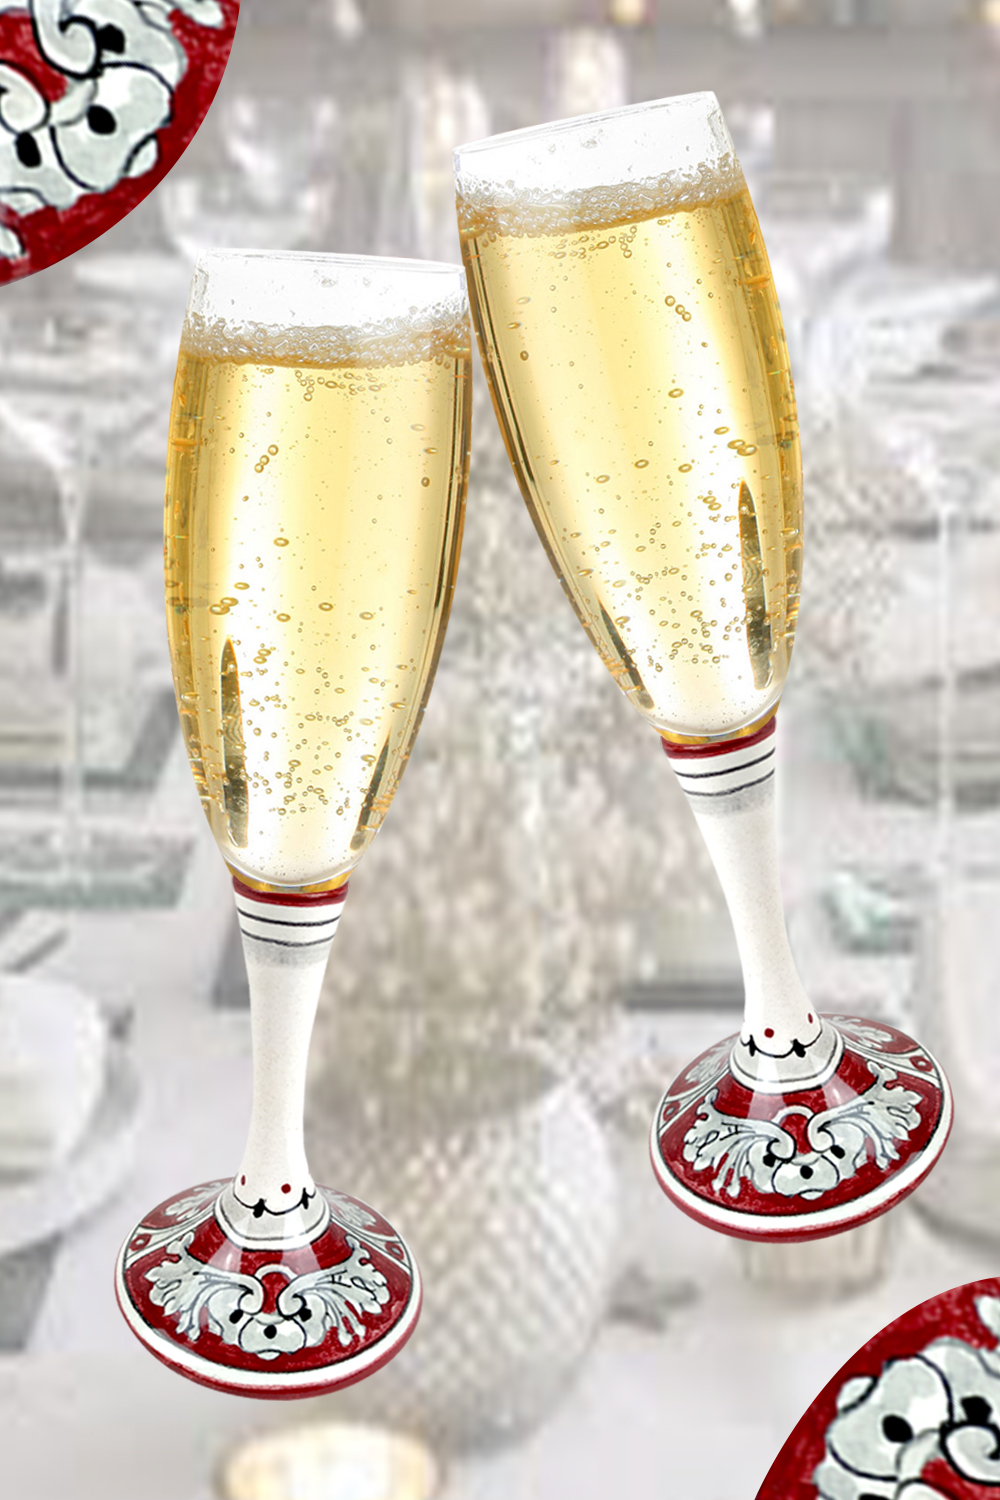 Ceramic and glass goblets with Italian decorations